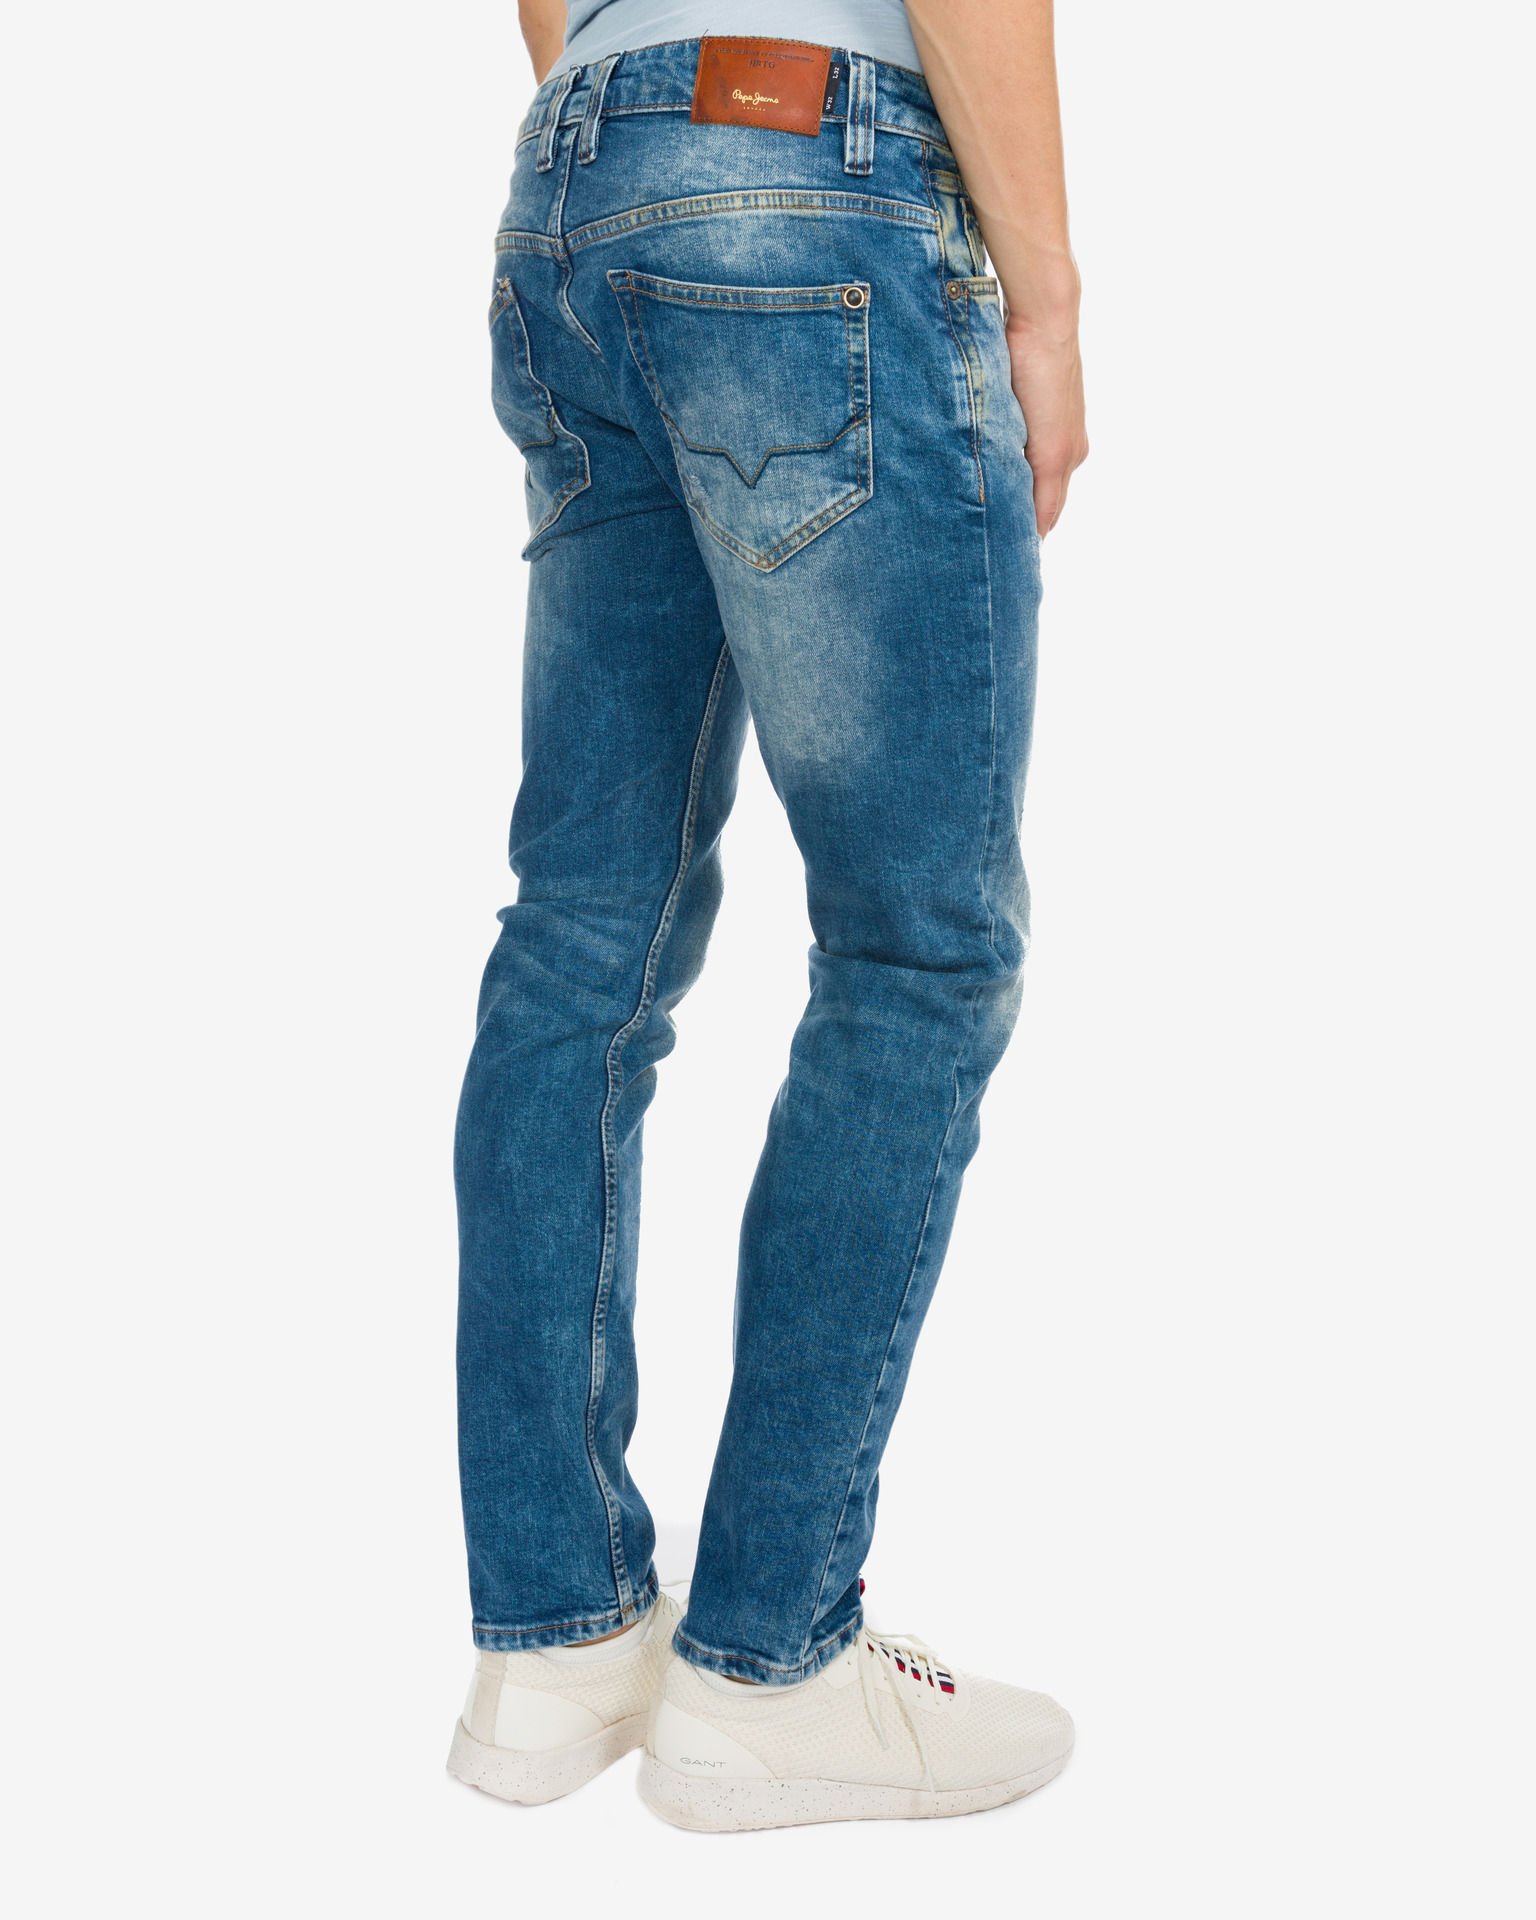 Pepe Jeans Junior Boy: Zinc Dusted Jeans Bibloo.com